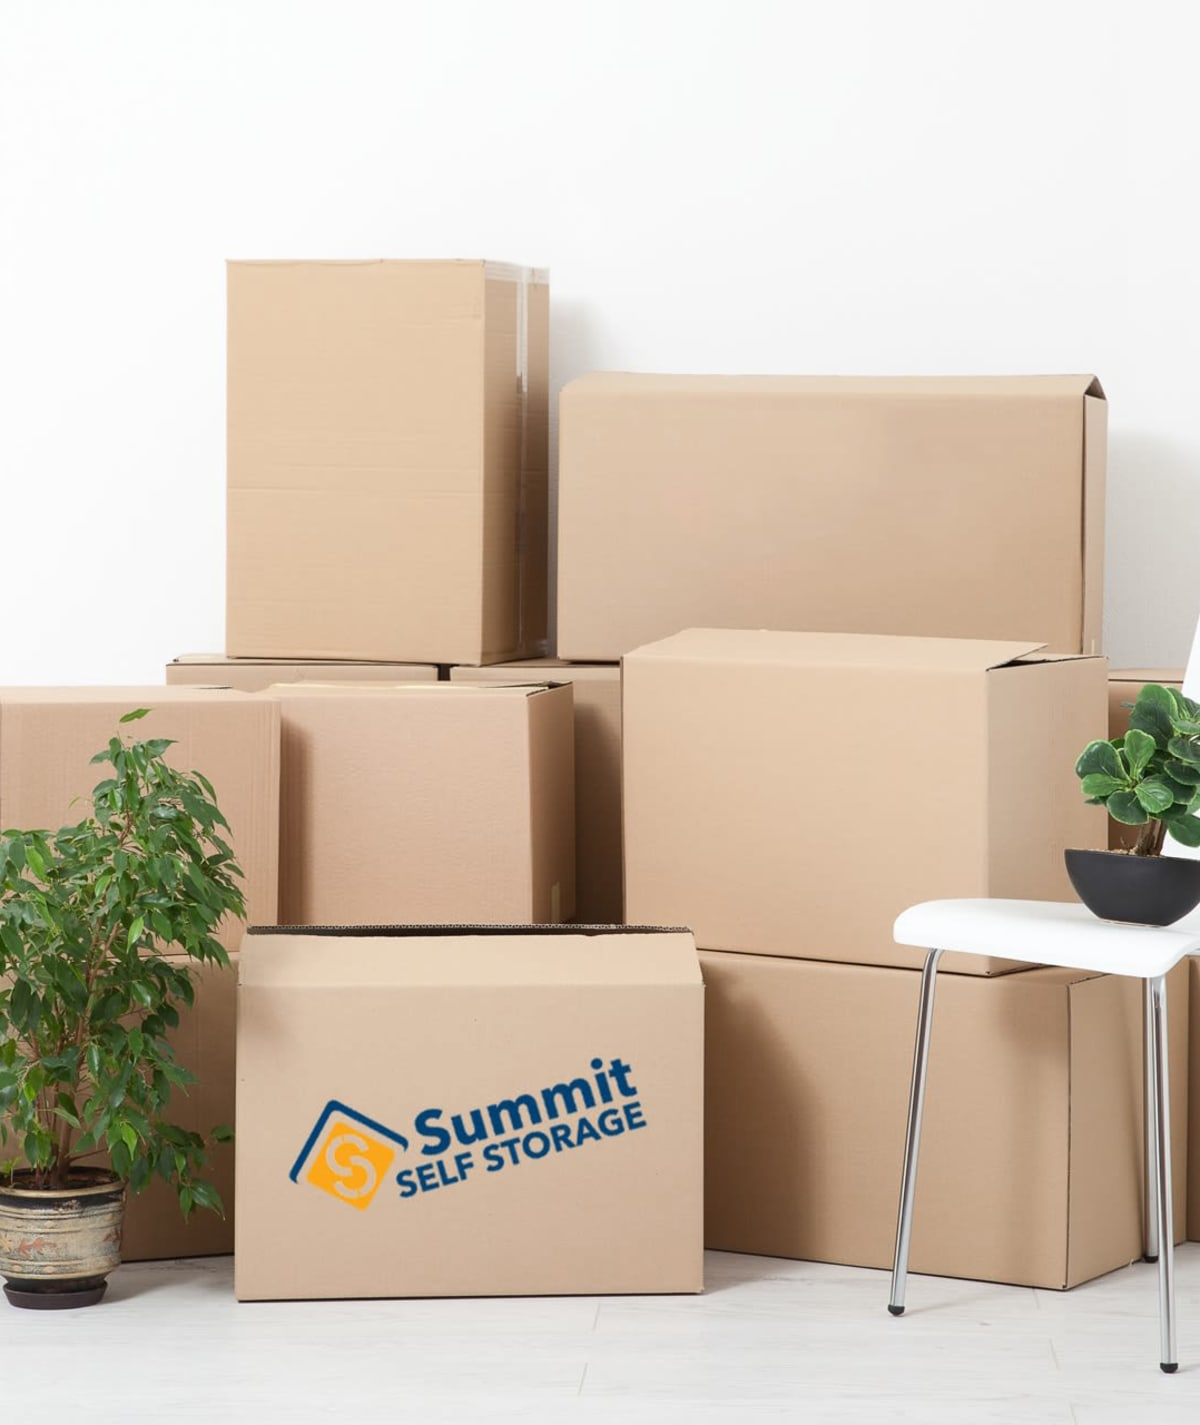 StorSmart Insurance from Summit Self Storage in Akron, Ohio